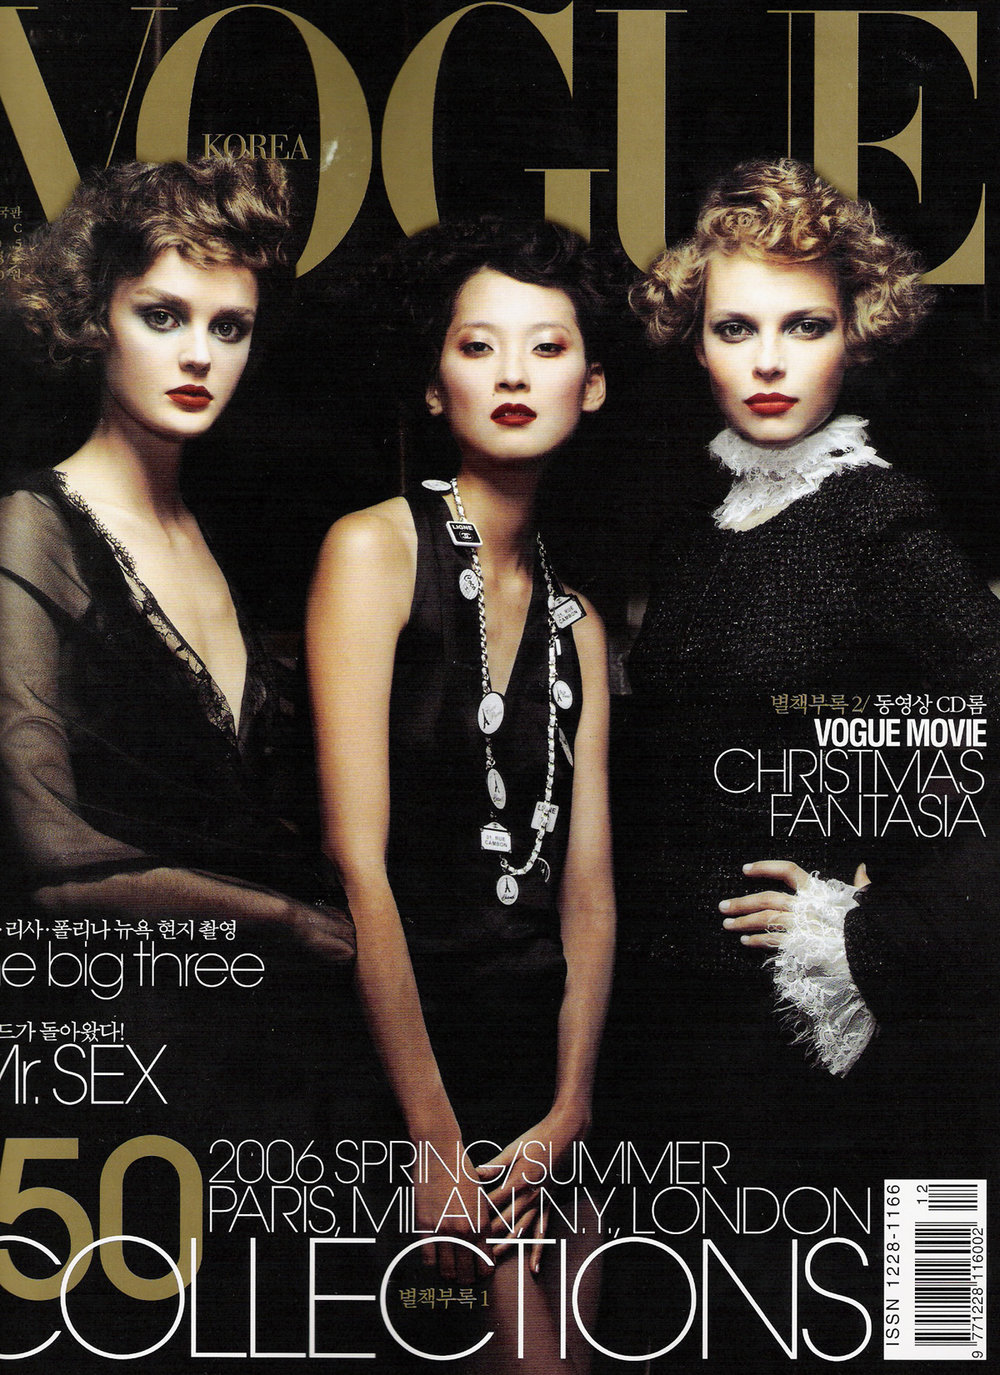 lisa-cant-and-polina-kouklina-vogue-korea-december-2005.jpg